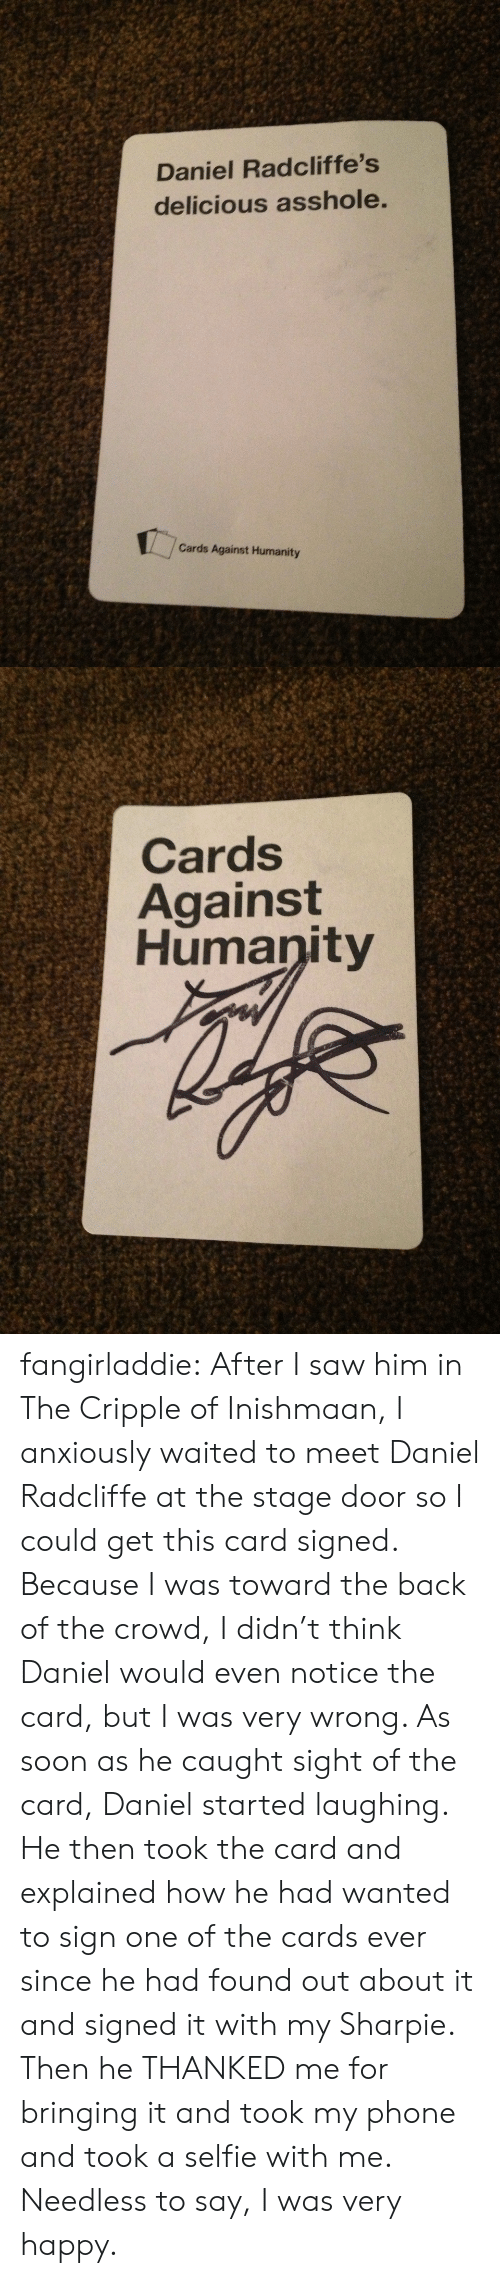 Stage Door: Daniel Radcliffe's  delicious asshole  Cards Against Humanity   Cards  Against  Humanity fangirladdie:  After I saw him in The Cripple of Inishmaan, I anxiously waited to meet Daniel Radcliffe at the stage door so I could get this card signed. Because I was toward the back of the crowd, I didn't think Daniel would even notice the card, but I was very wrong. As soon as he caught sight of the card, Daniel started laughing. He then took the card and explained how he had wanted to sign one of the cards ever since he had found out about it and signed it with my Sharpie. Then he THANKED me for bringing it and took my phone and took a selfie with me. Needless to say, I was very happy.